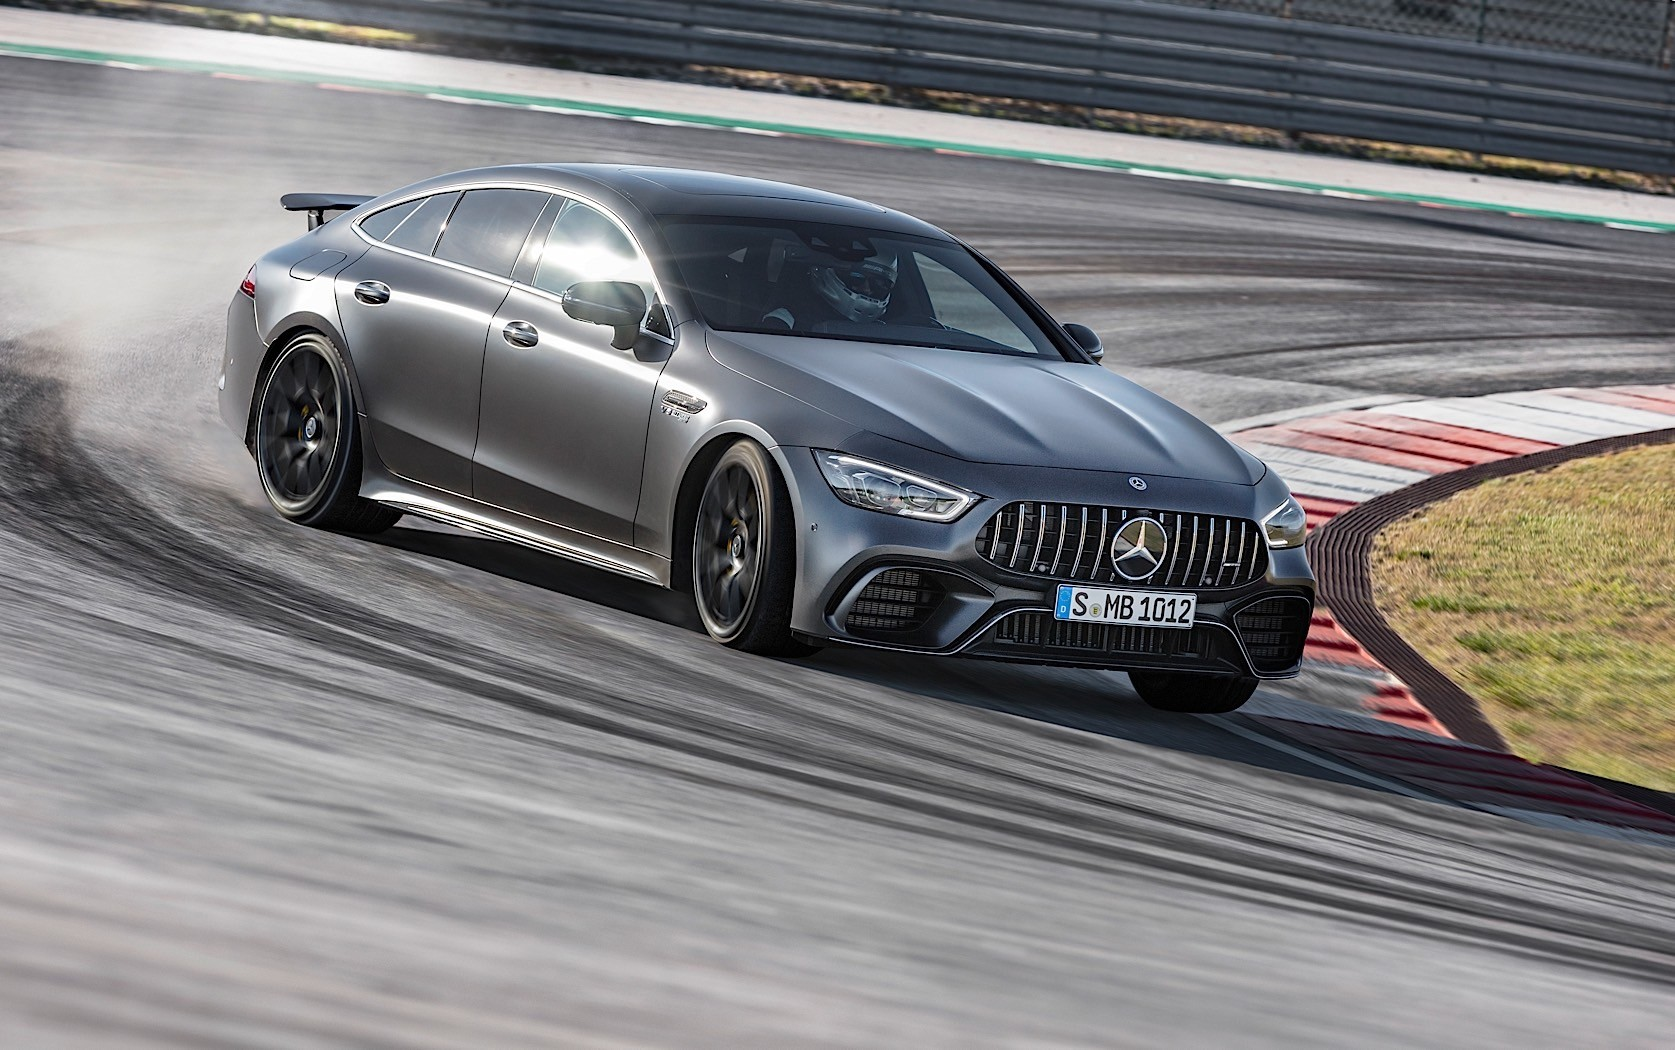 2019 mercedes amg gt 4 door coupe goes live in geneva autoevolution. Black Bedroom Furniture Sets. Home Design Ideas